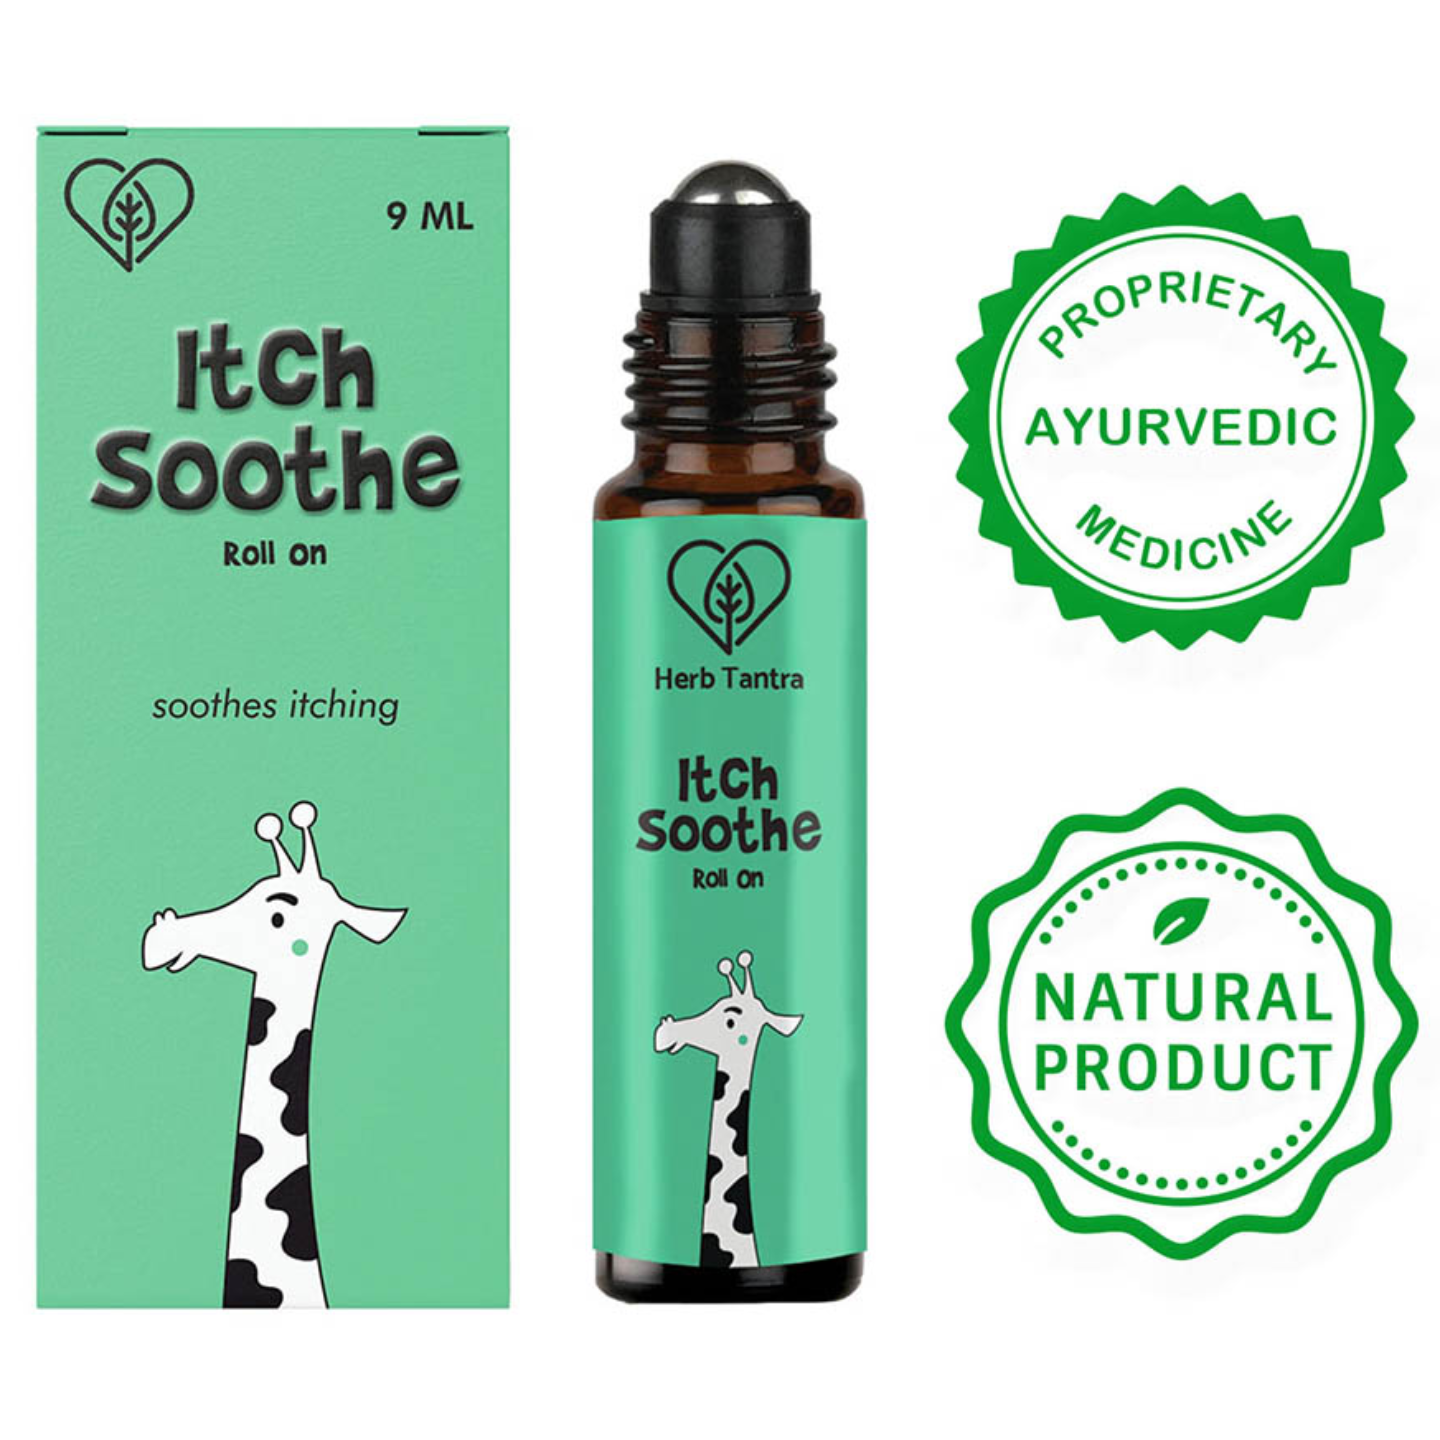 Herb Tantra Itch Soothe Kids Roll On For Itches & Bug Bites (9ml)